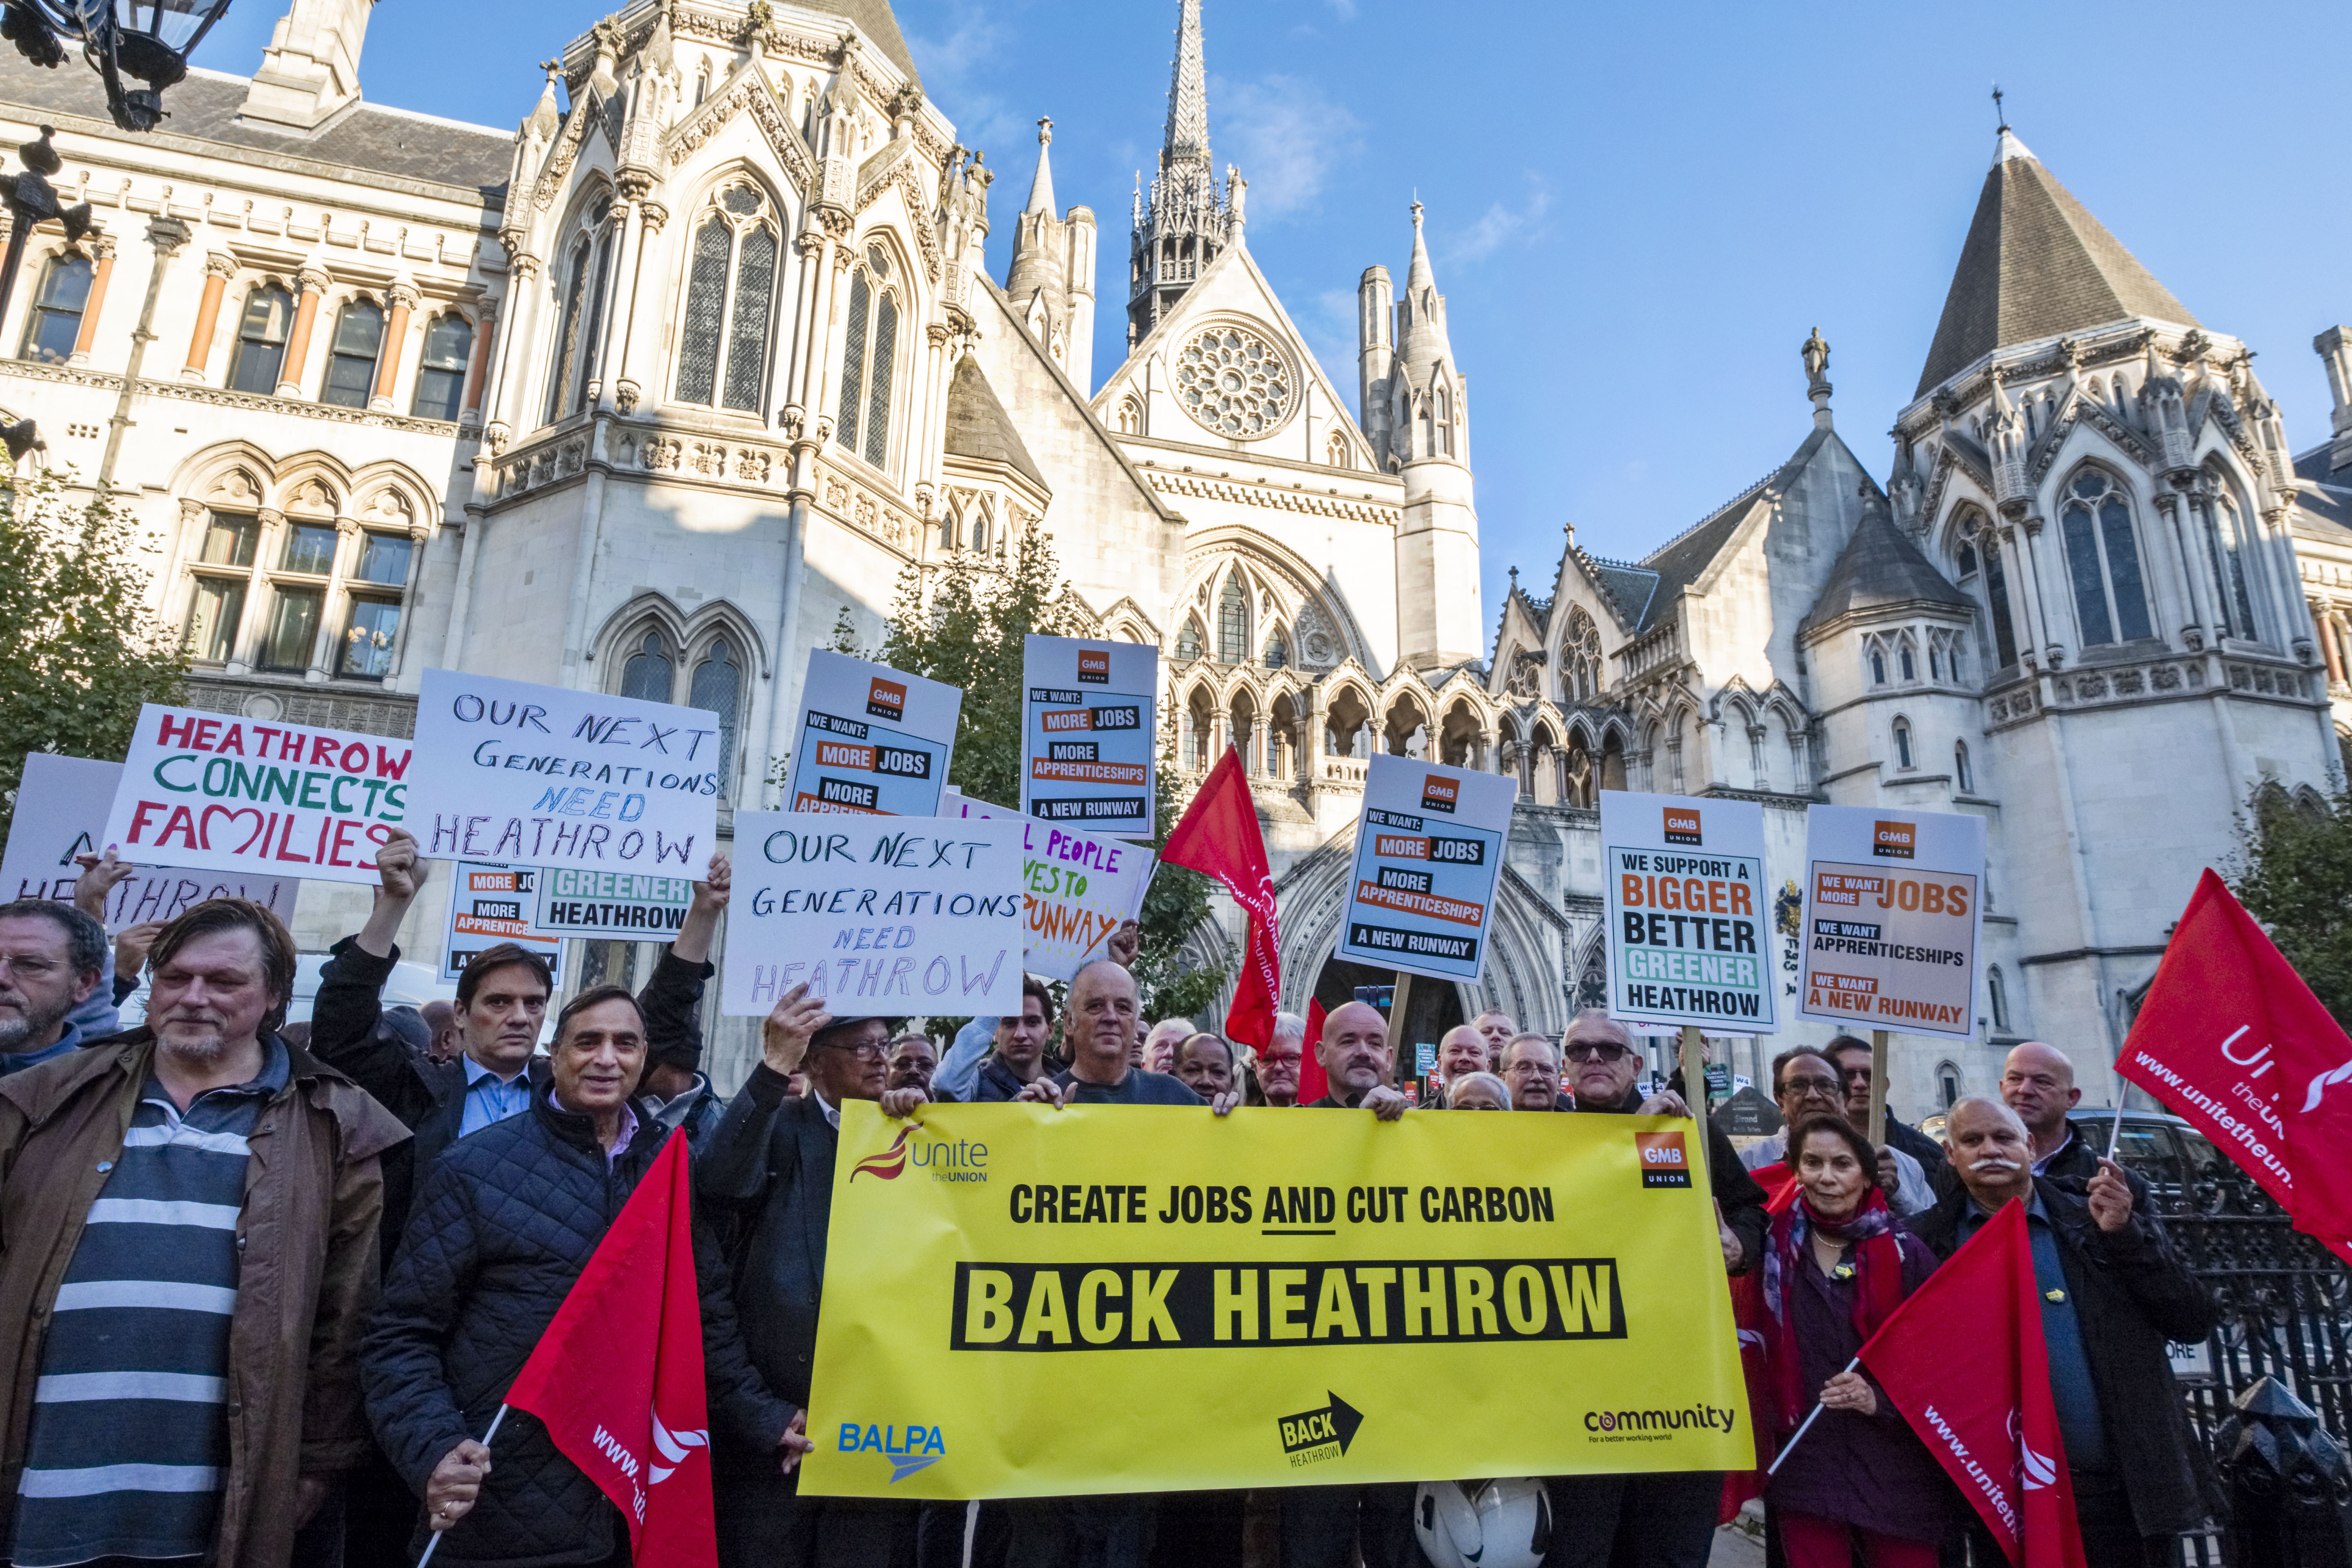 Back Heathrow supporters in front of Royal Courts of Justice